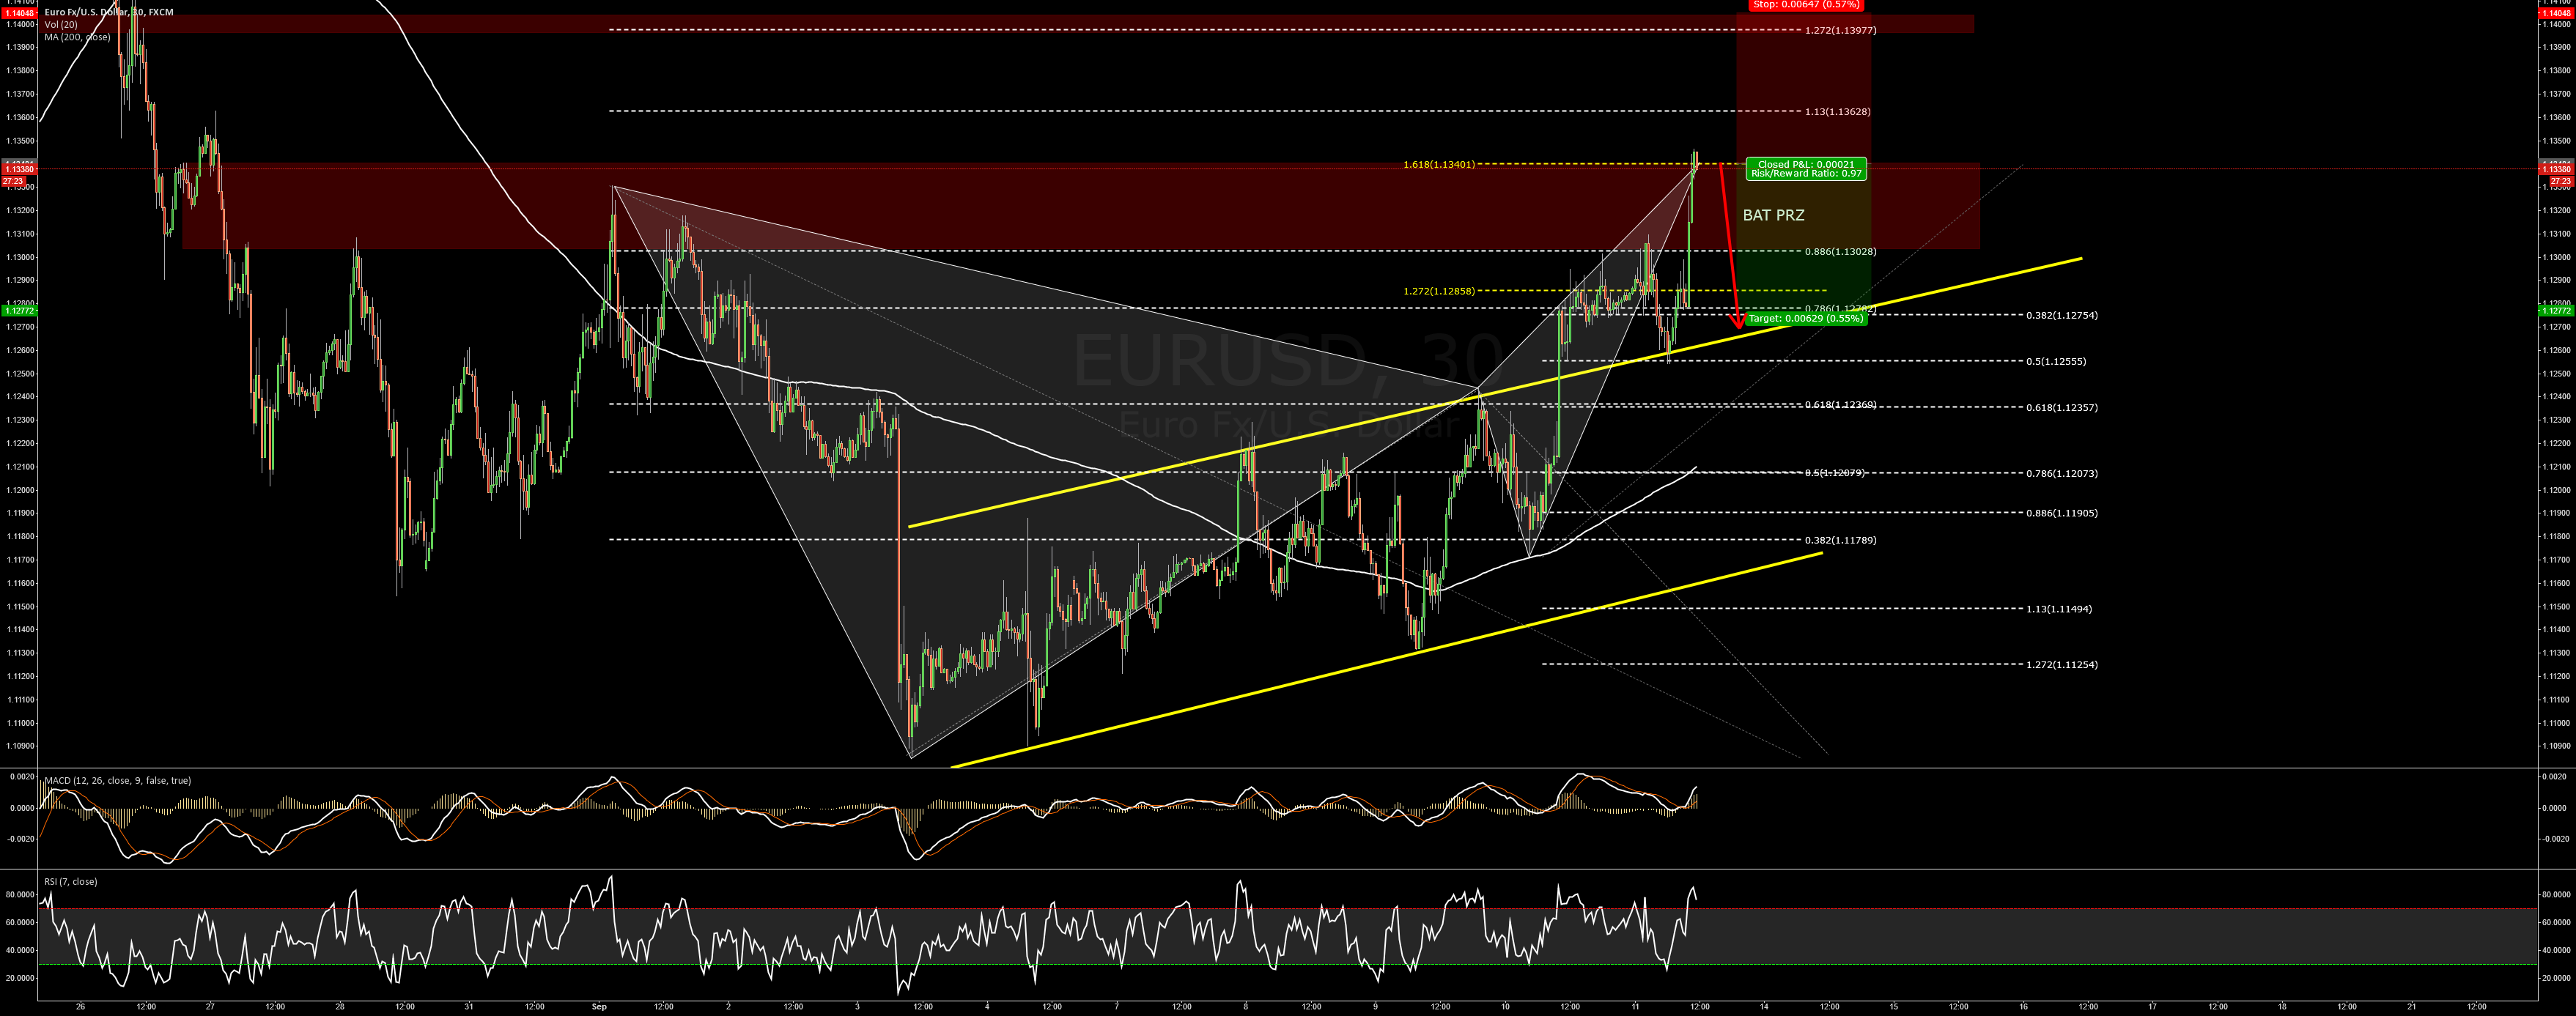 EURUSD Bearish BAT pattern